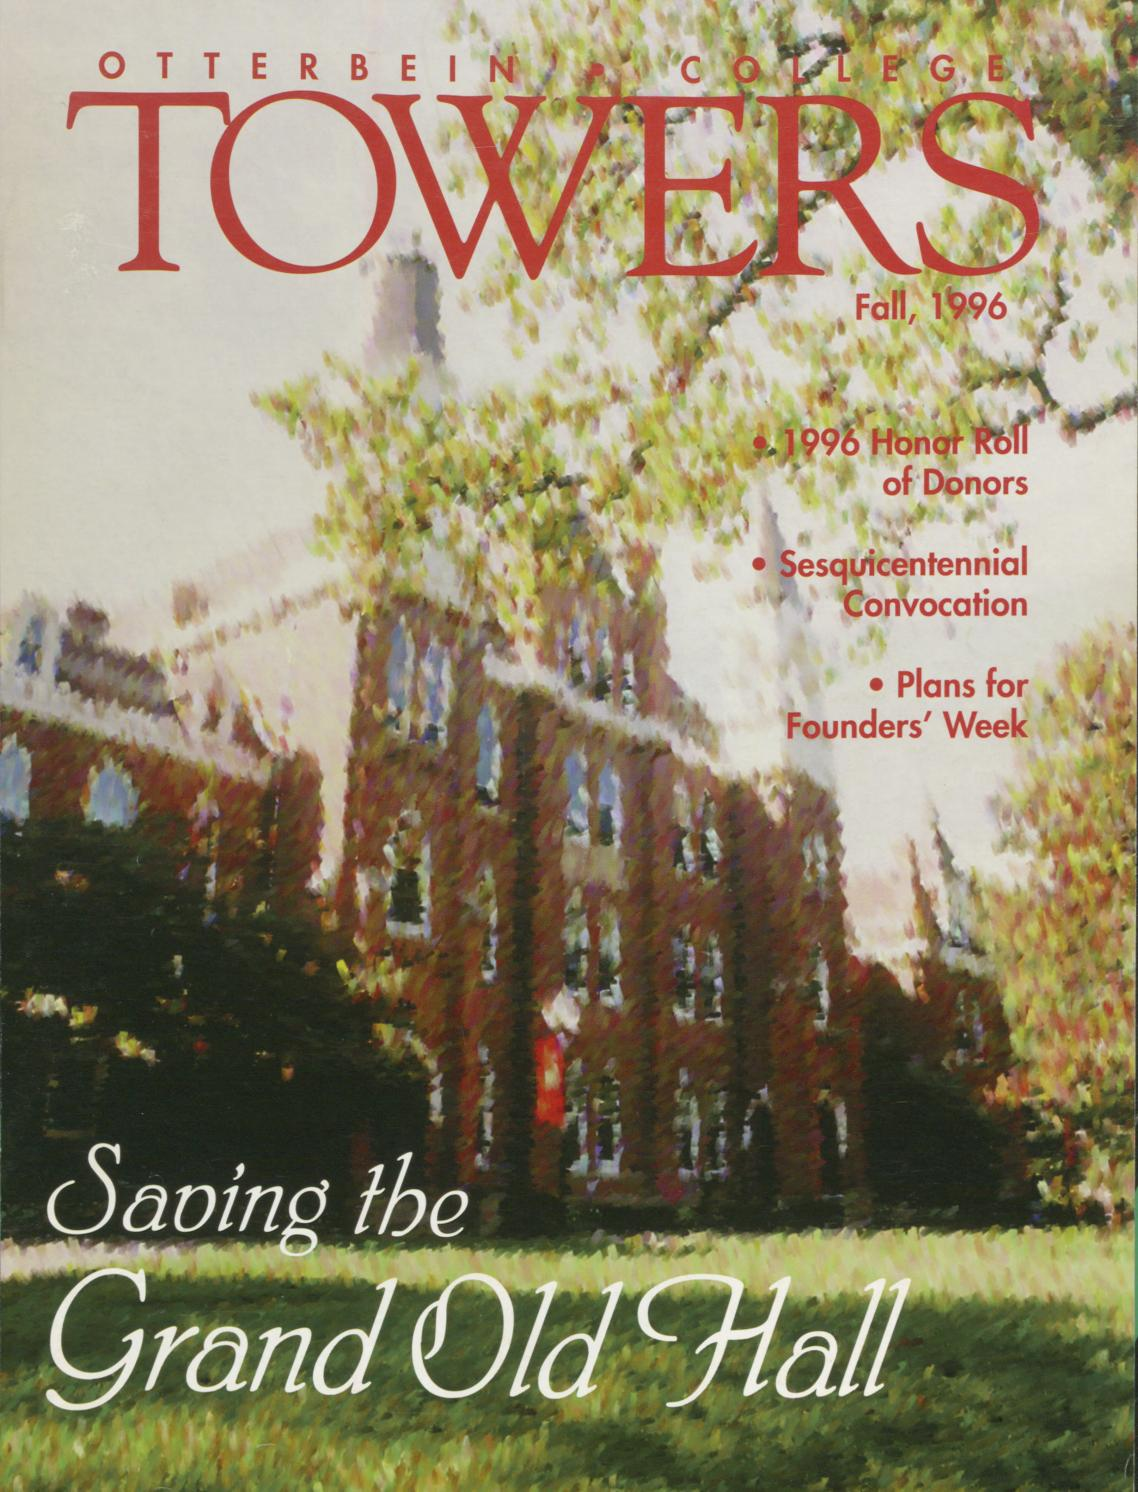 a place to call home by amy schisler reviews discussion a place called home book Otterbein Towers 1996 Fall by Otterbein University - issuu